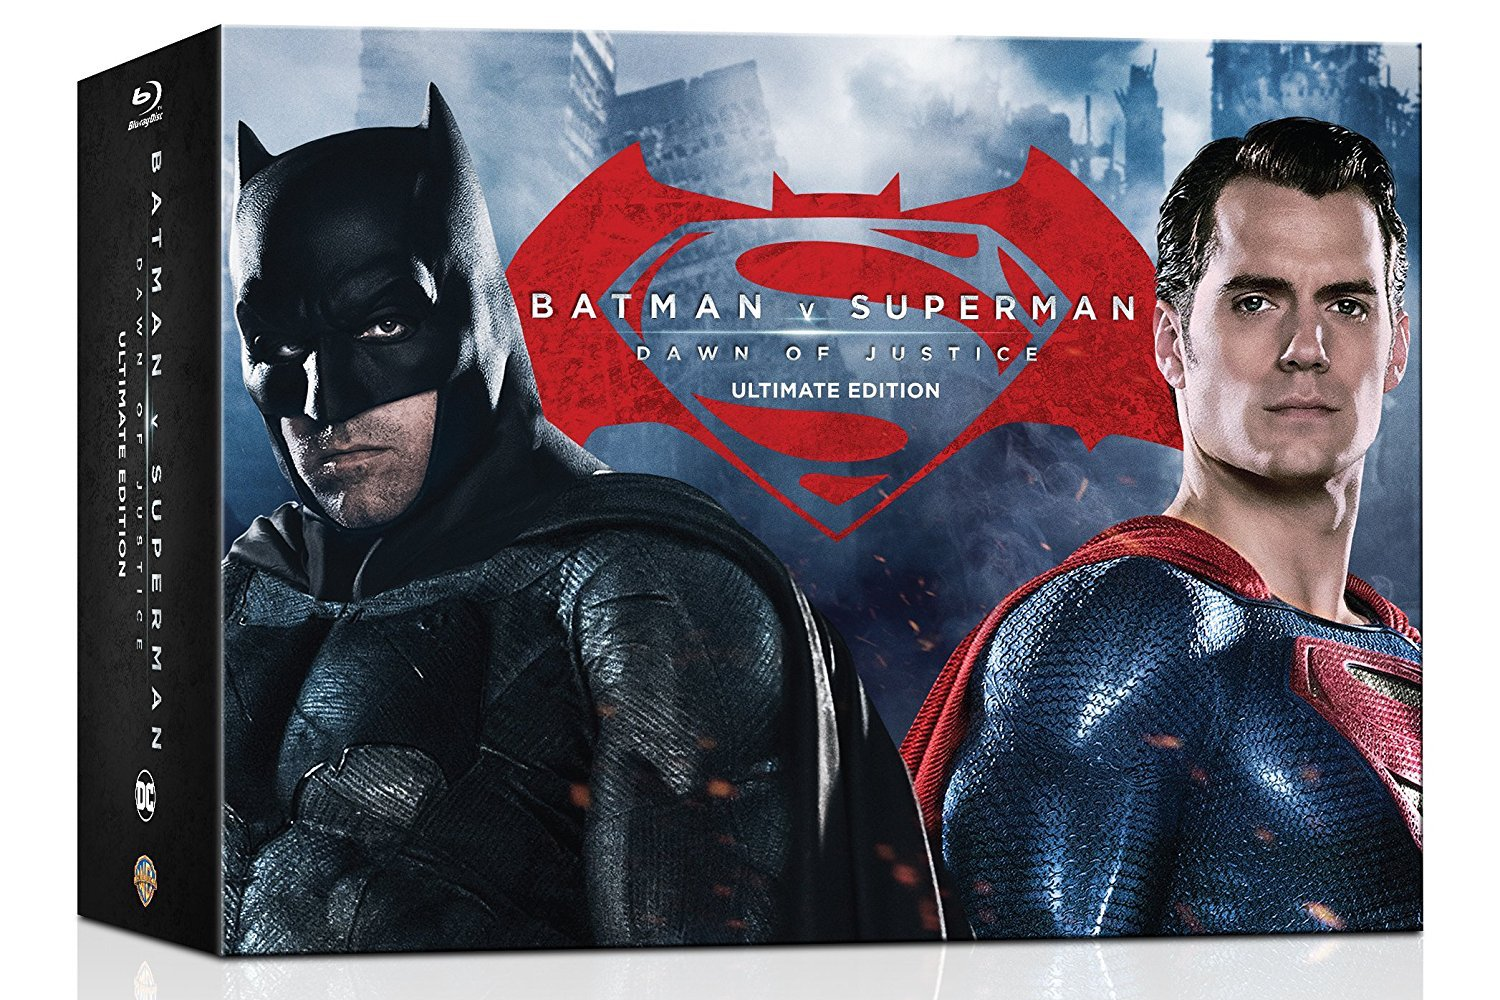 Batman V Superman: Dawn Of Justice Limited Edition Box Set Coming This Holiday Season